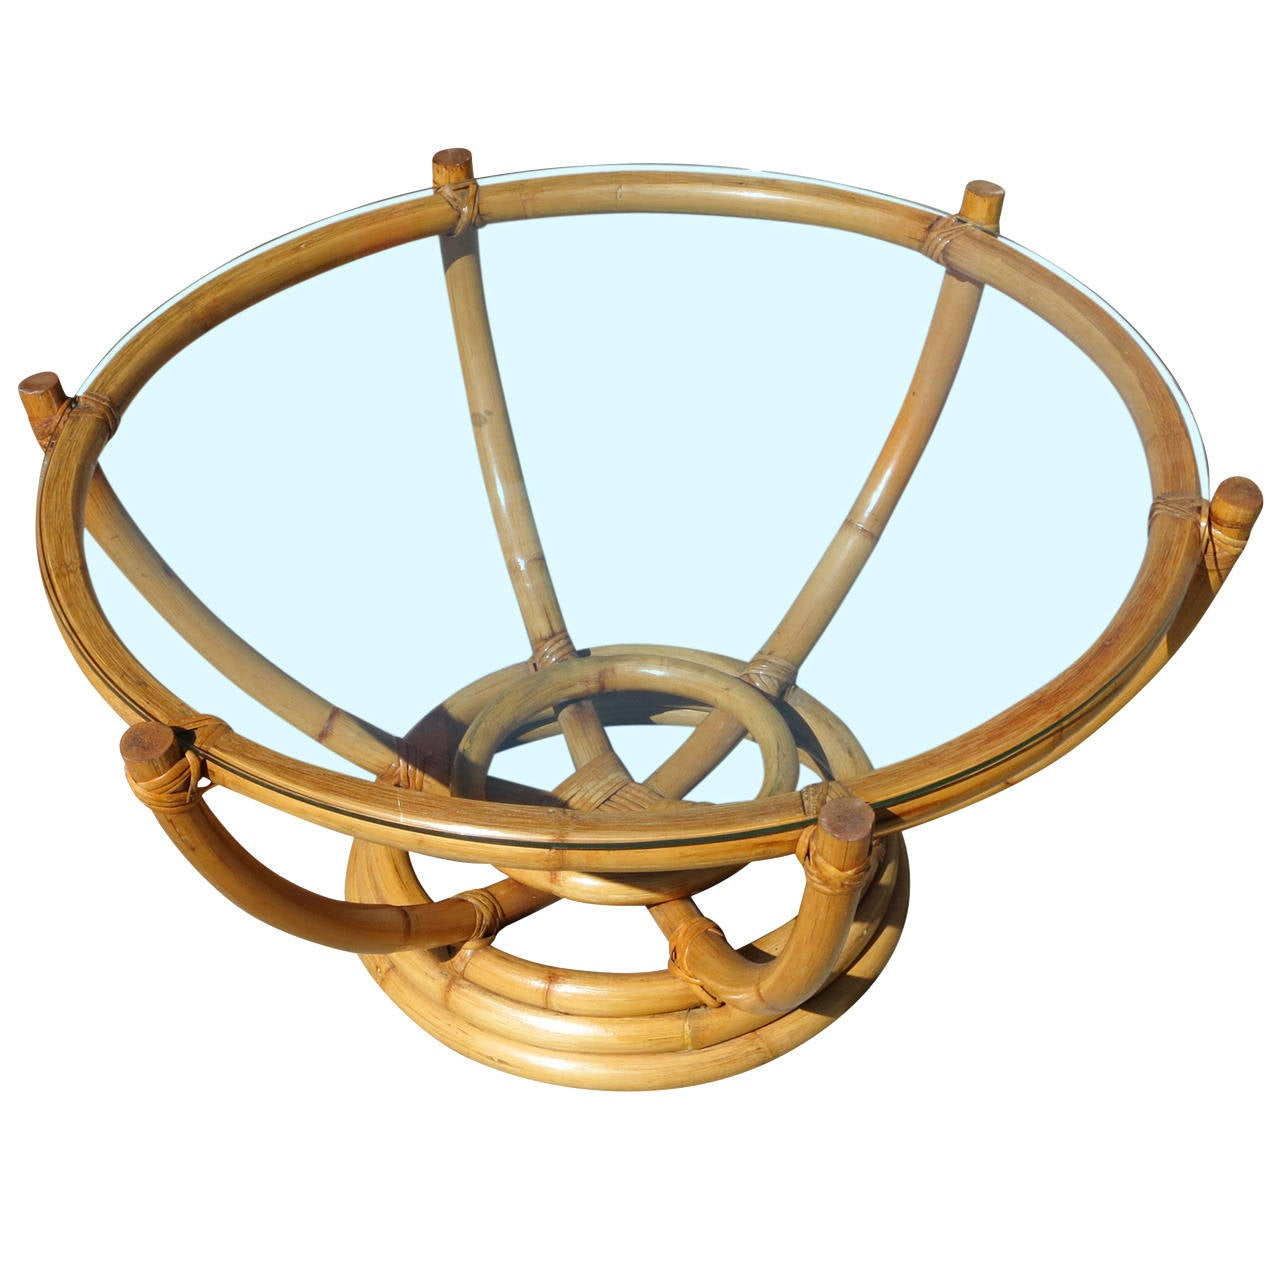 restored six pole rattan coffee table with floating glass top for